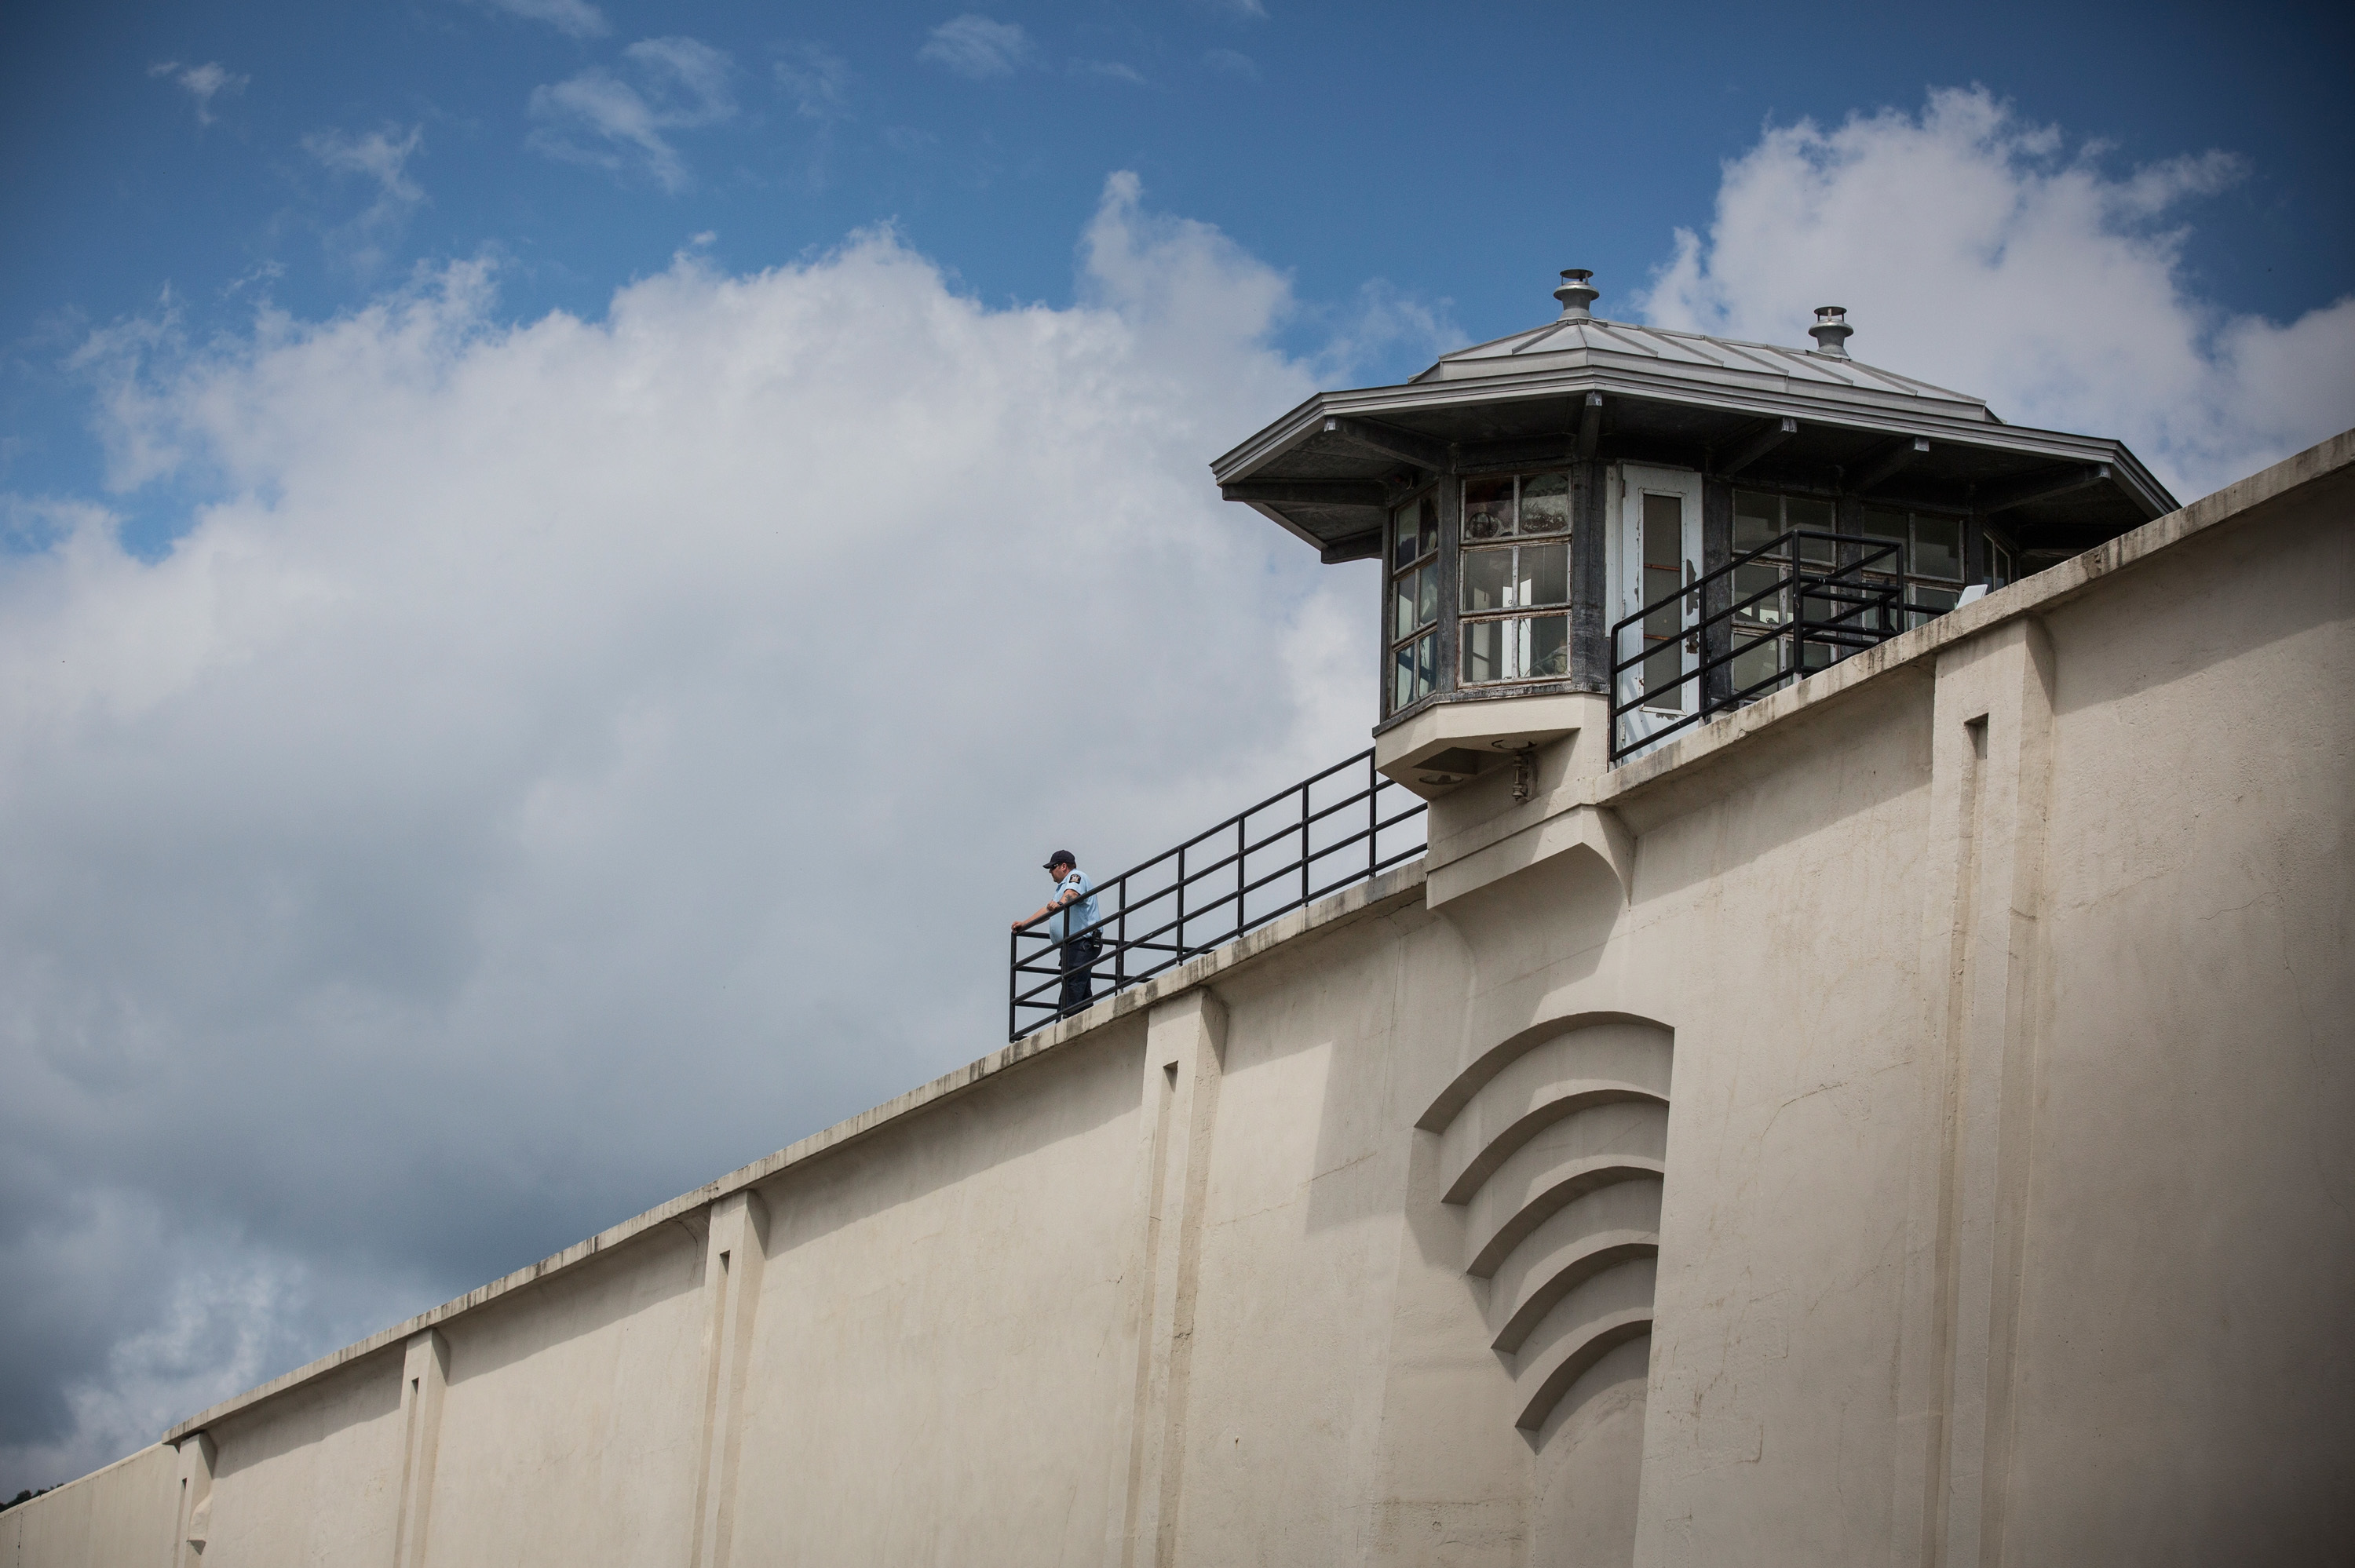 Reports Of Prison Guard Brutality In New York Draw A Harsh Spotlight